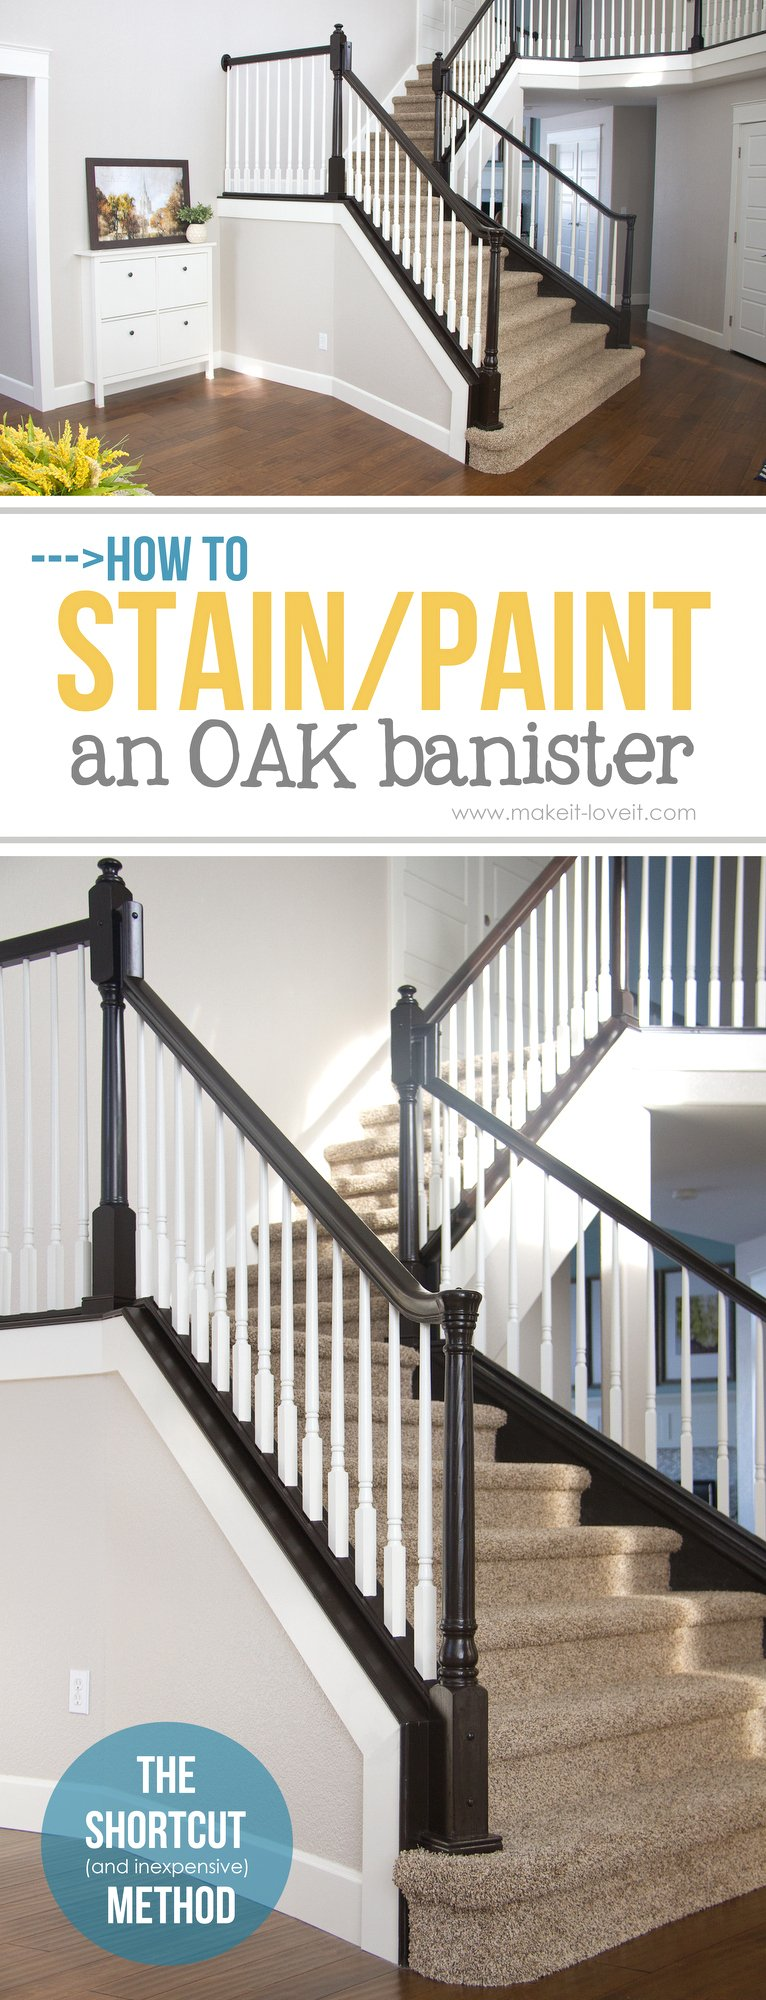 how to stain oak cabinets the simple method without sanding